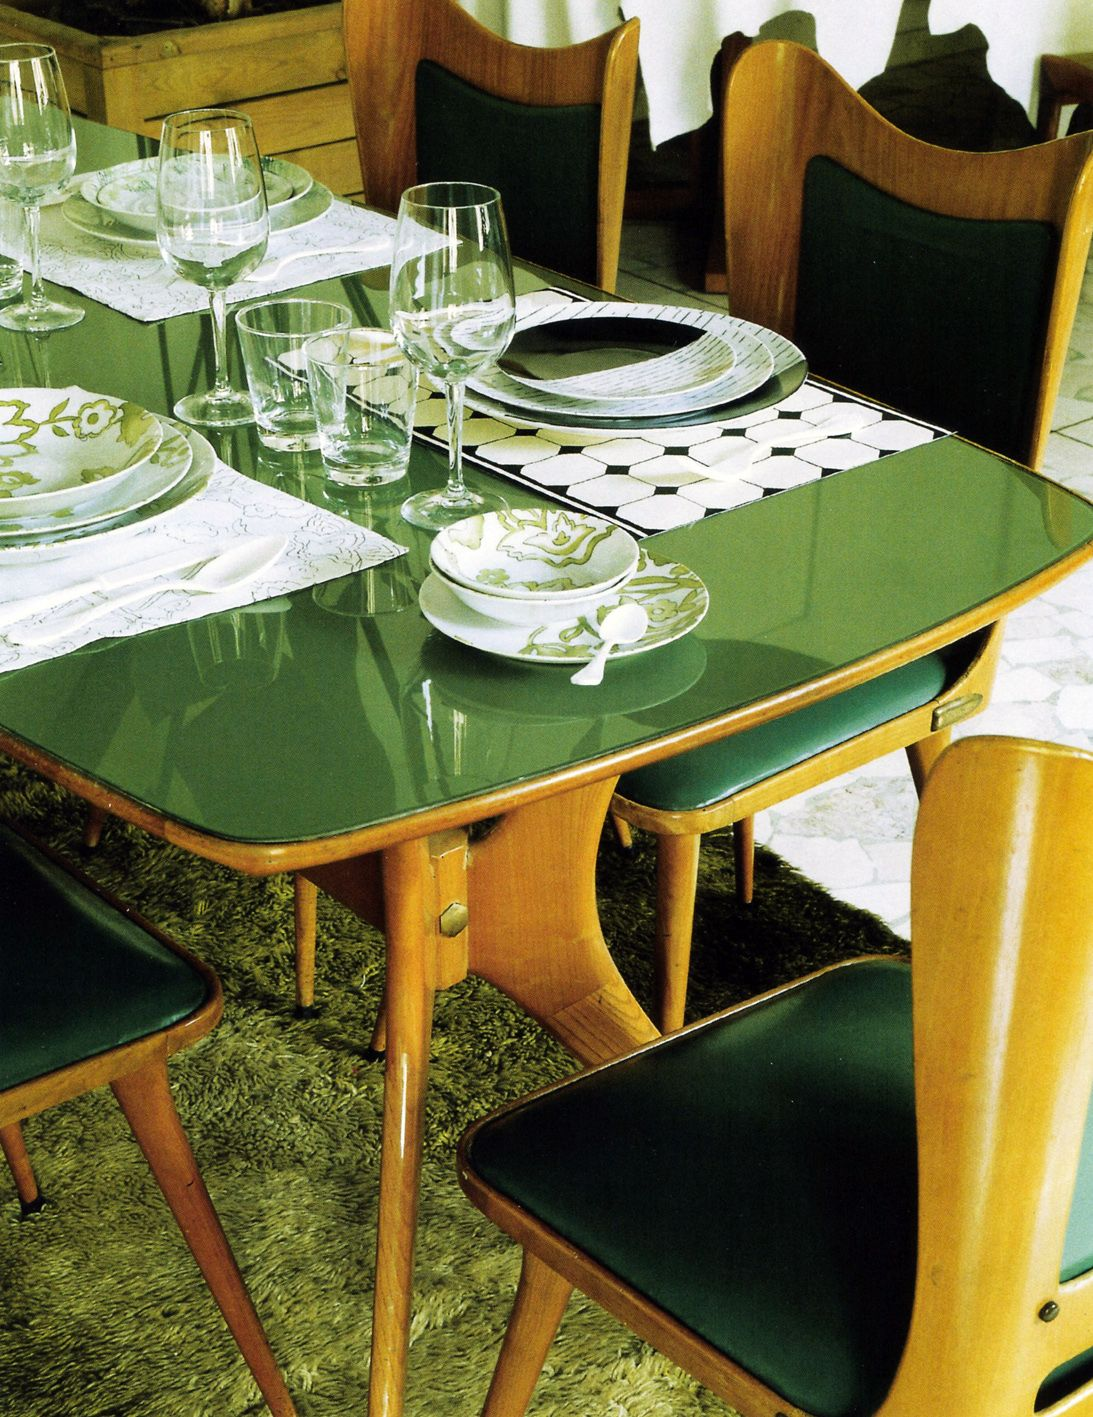 Vintage 60s Green Top Dining Table. I Wonder If A Green